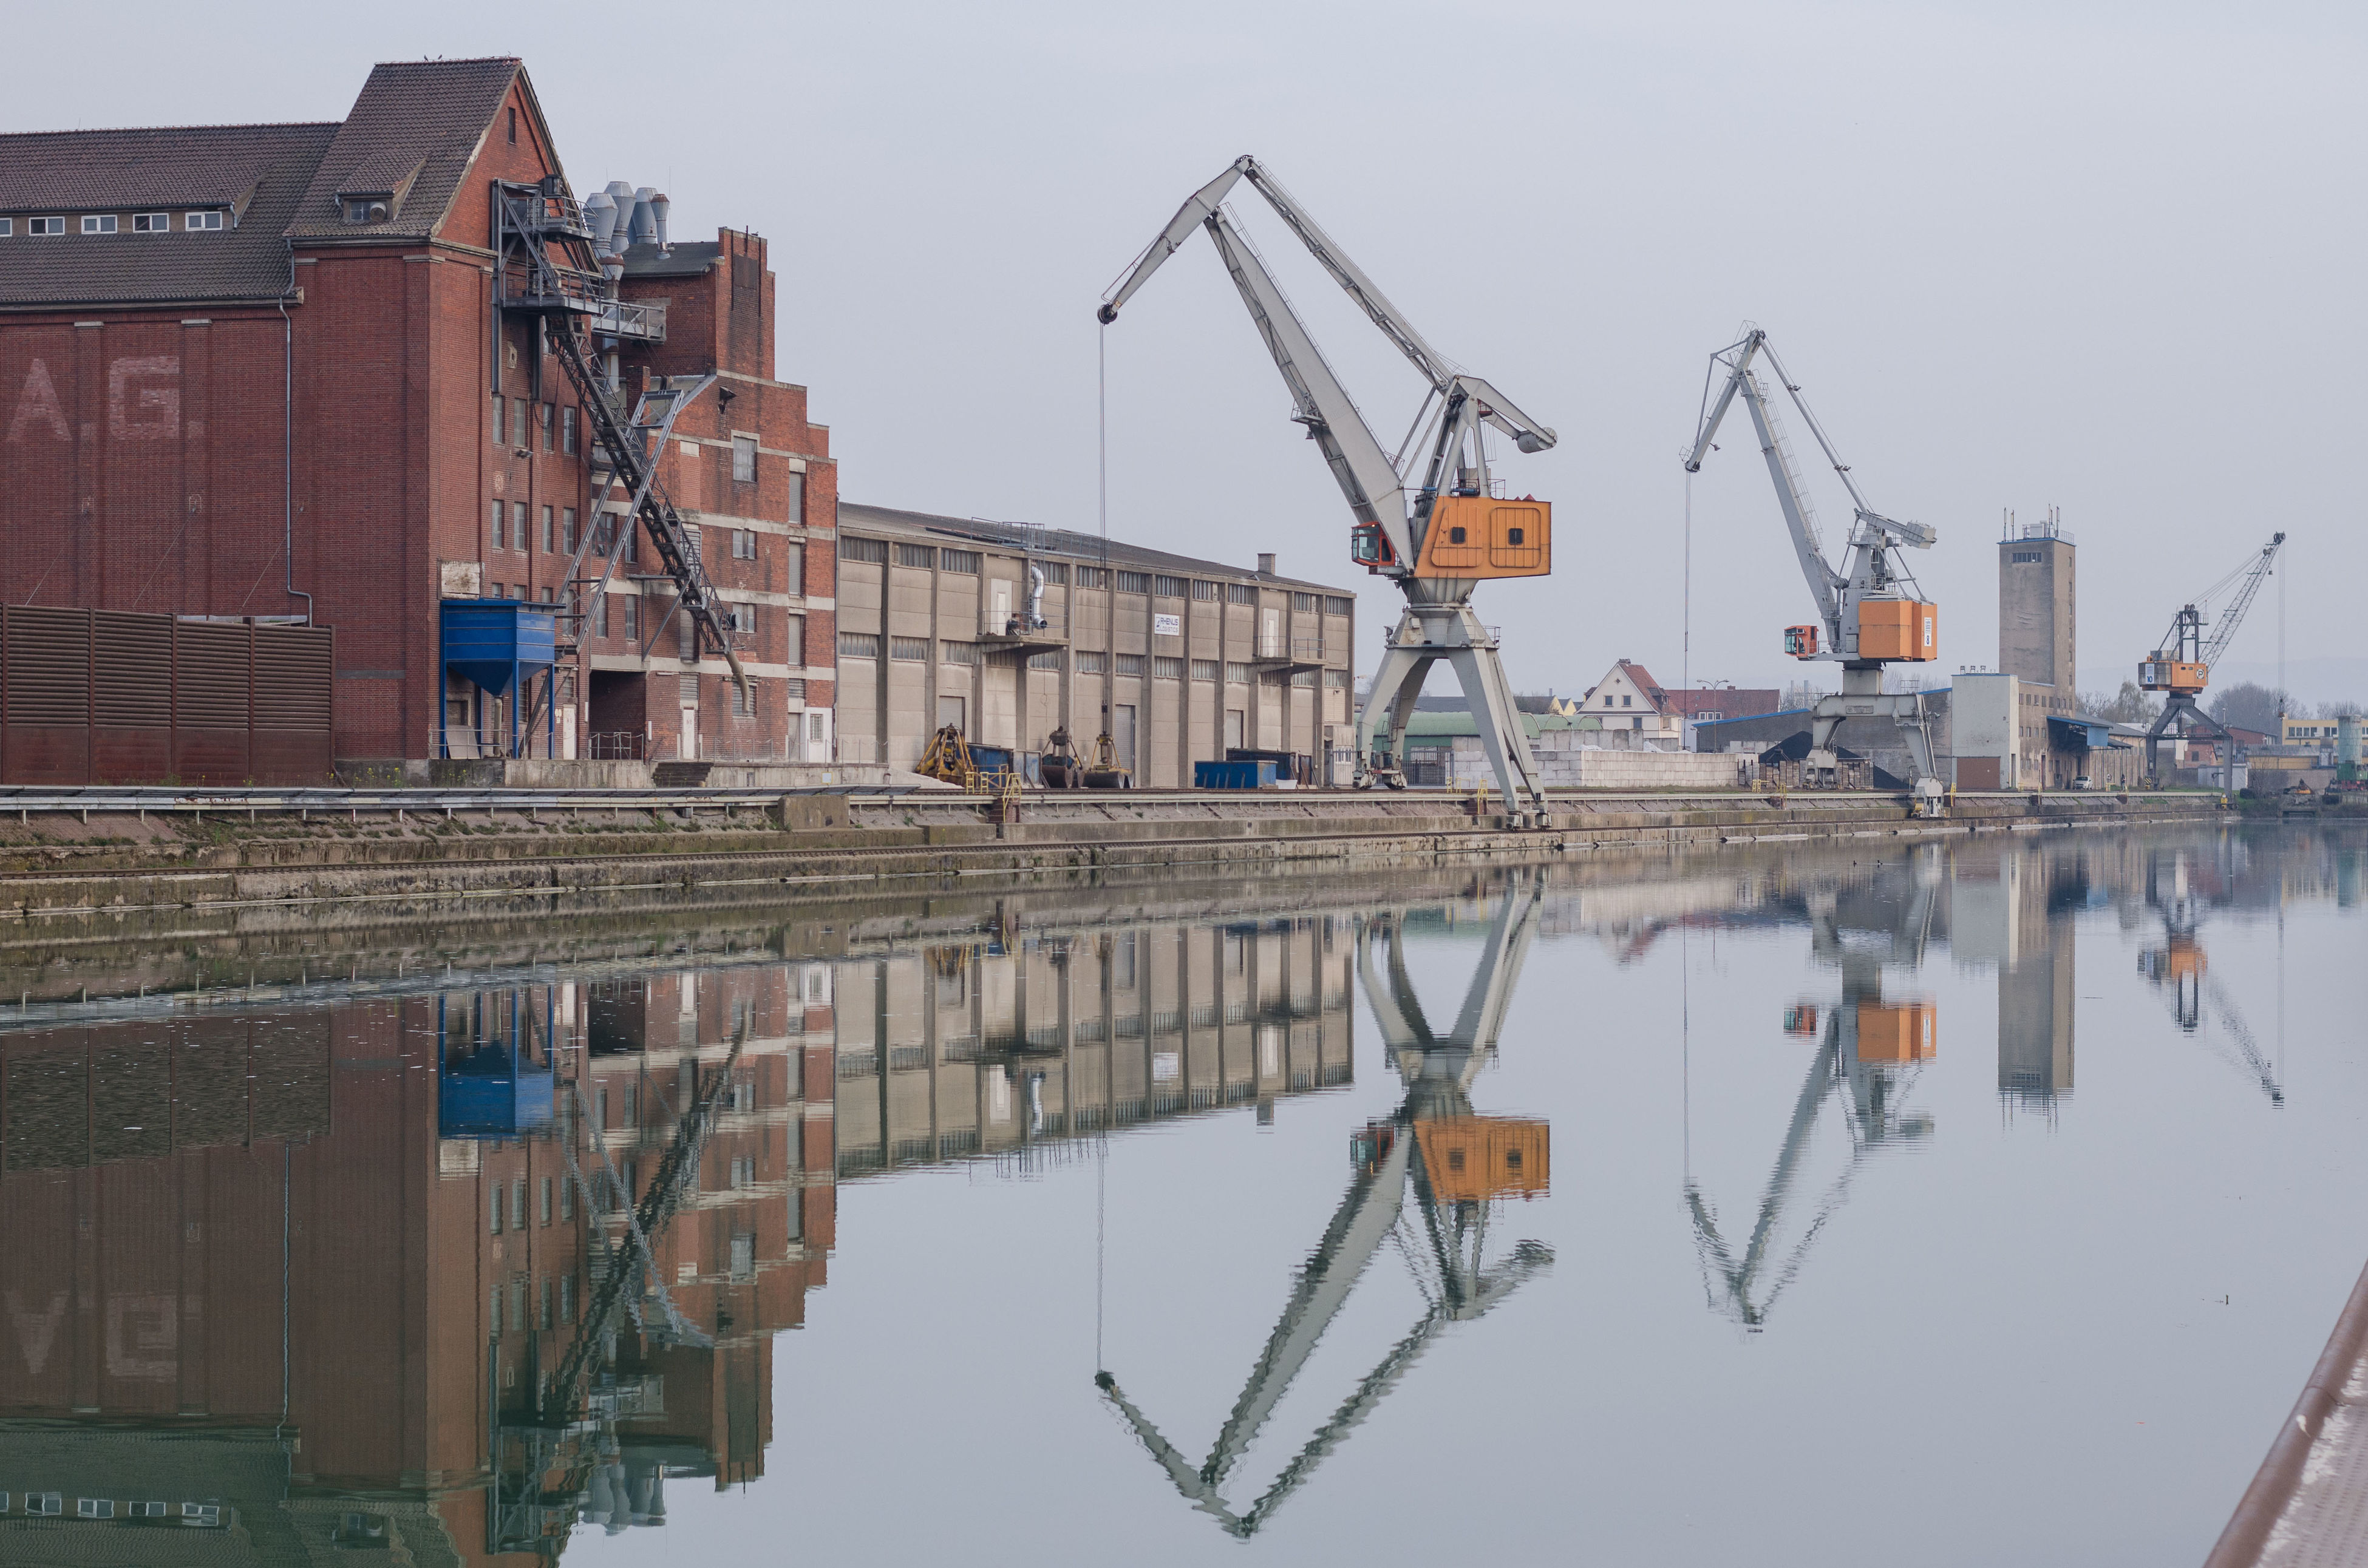 crane - construction machinery, built structure, architecture, building exterior, water, construction site, harbor, crane, industry, development, moored, clear sky, nautical vessel, commercial dock, construction, waterfront, mast, transportation, reflection, fuel and power generation